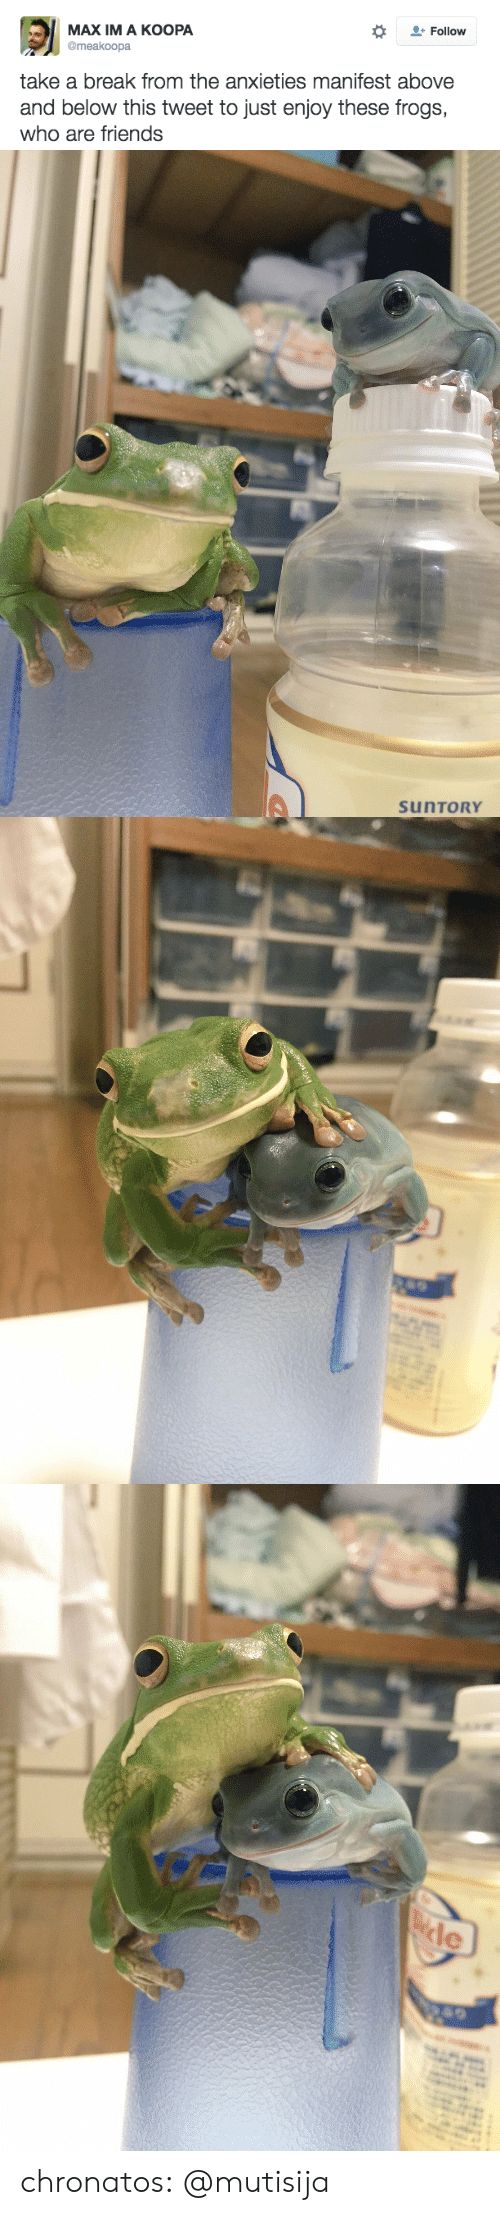 Friends, Tumblr, and Blog: МАX IM A КOOРА  @meakoopa  Follow  take a break from the anxieties manifest above  and below this tweet to just enjoy these frogs,  who are friends   SUNTORY   ele chronatos:  @mutisija